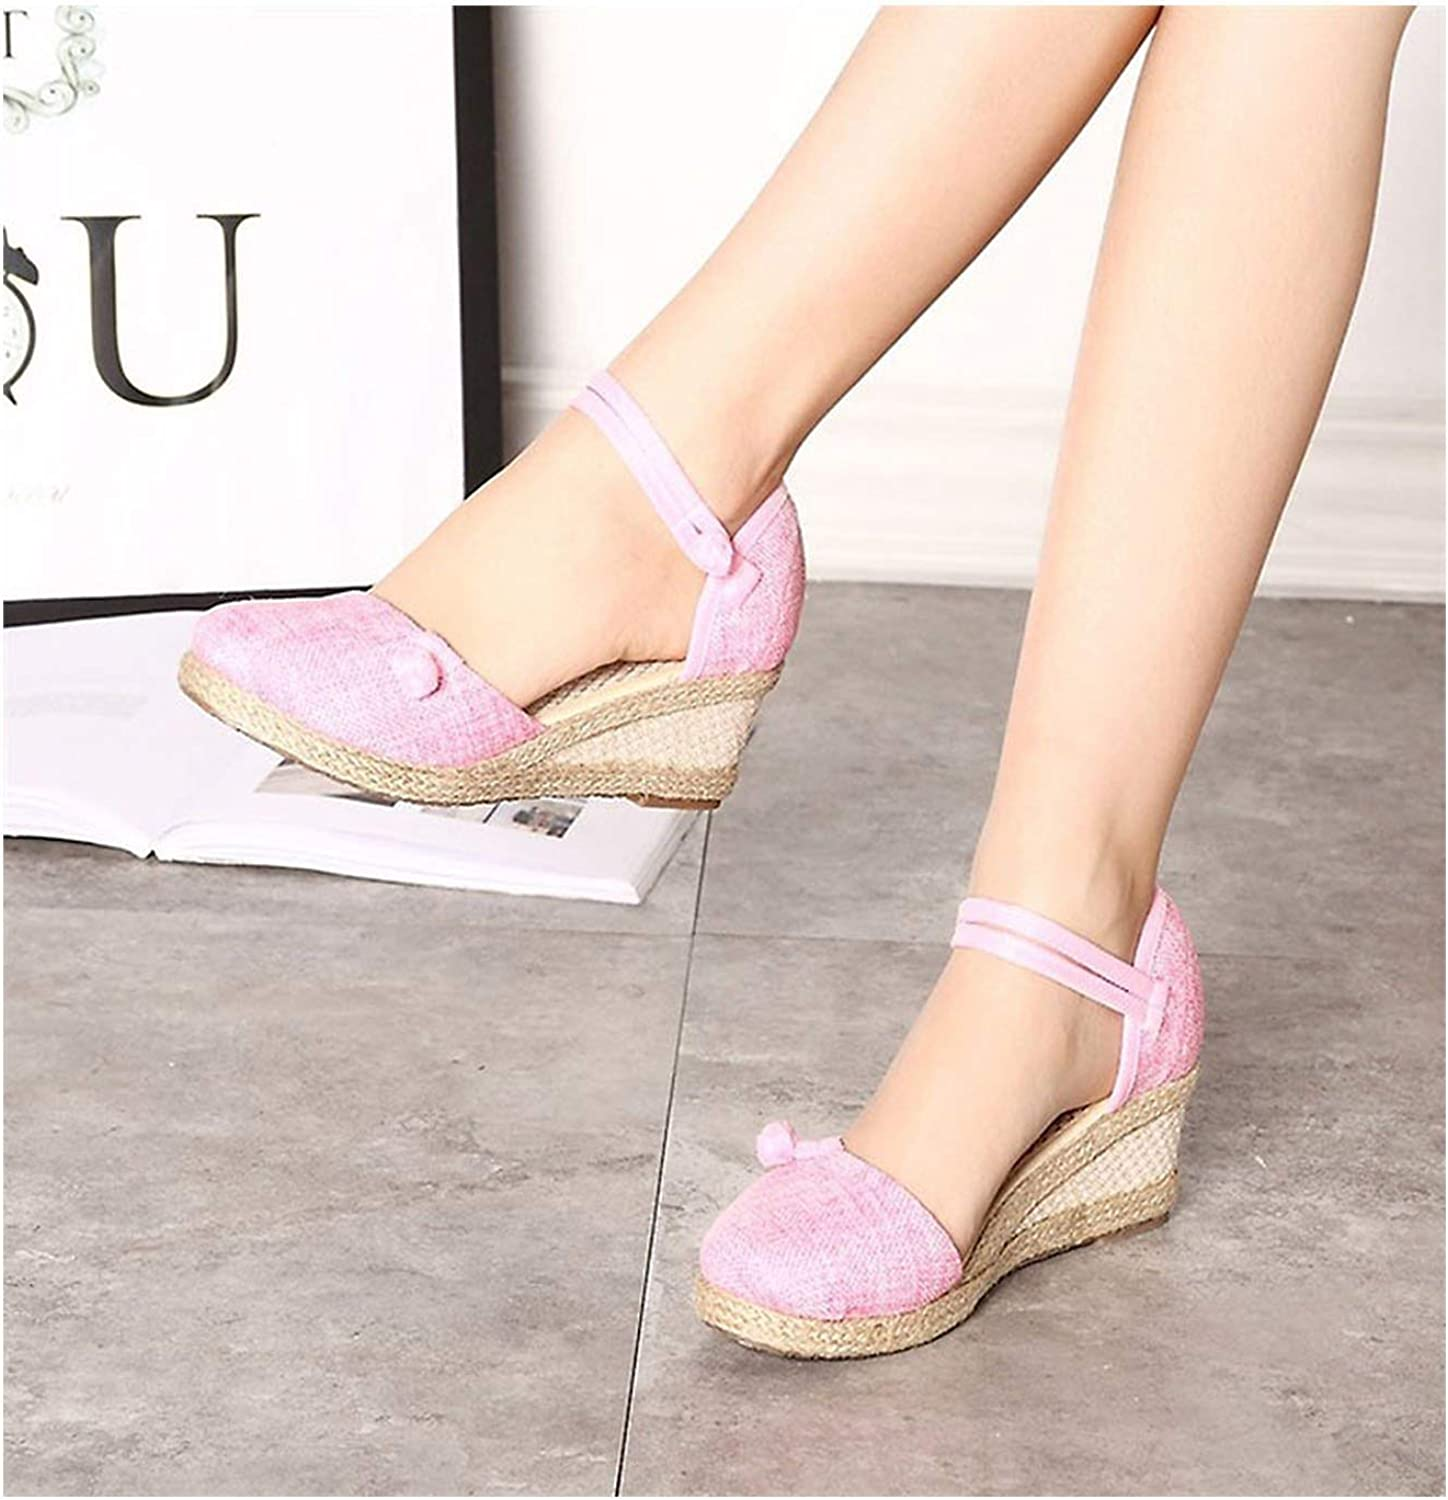 Vintage Women Sandals Casual Linen Canvas Wedge Sandals Summer Ankle Strap Heel Platform